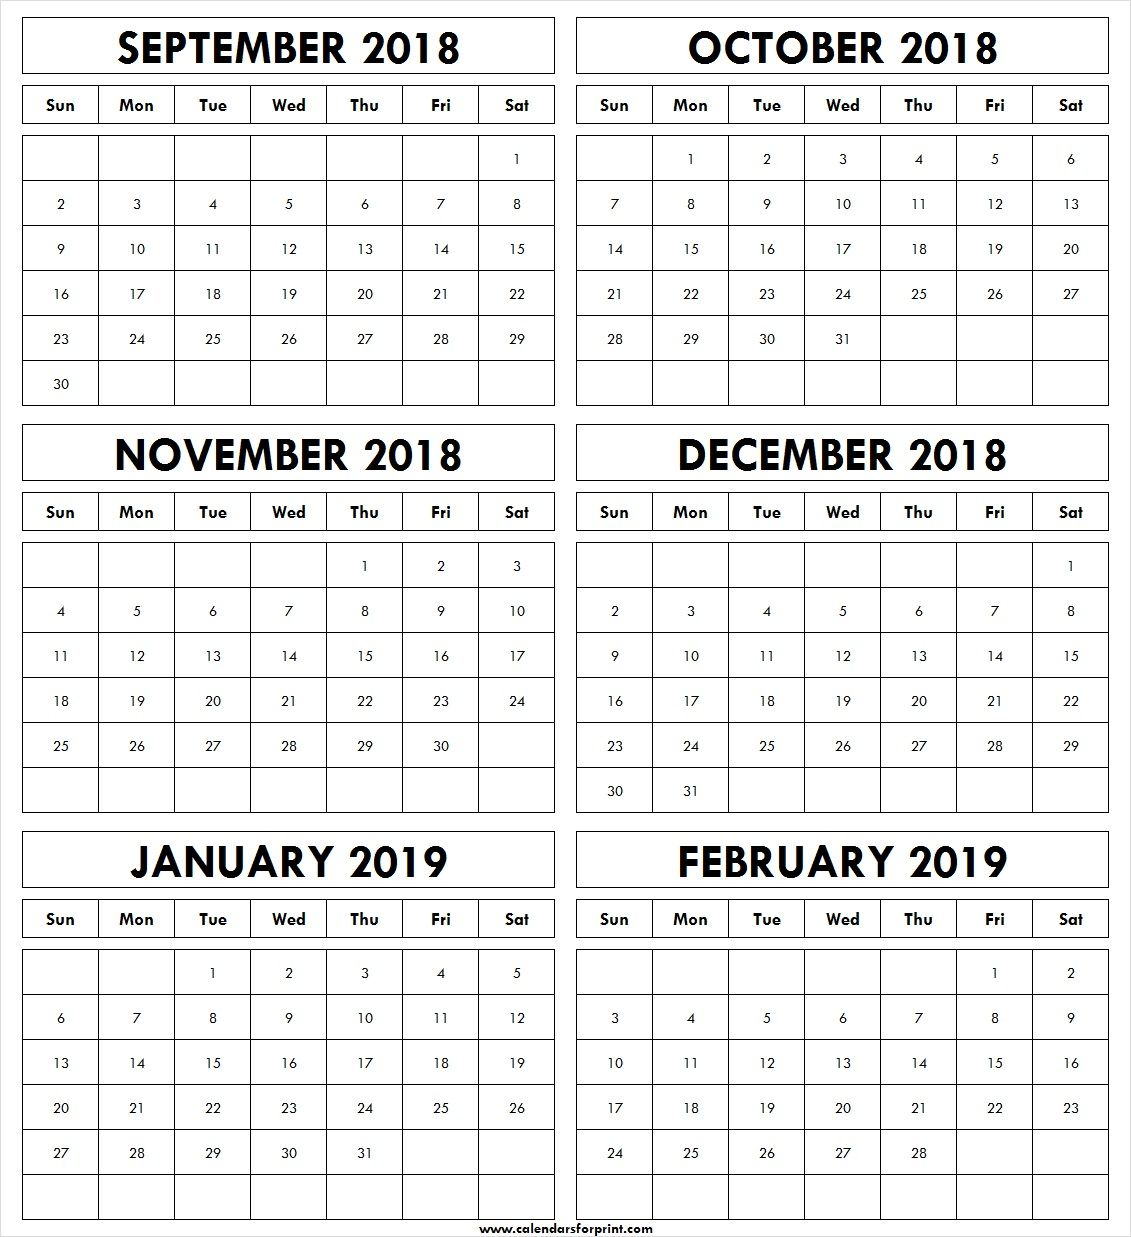 December 2019 To January 2019 Calendar Printable September October November December 2018 January February 2019